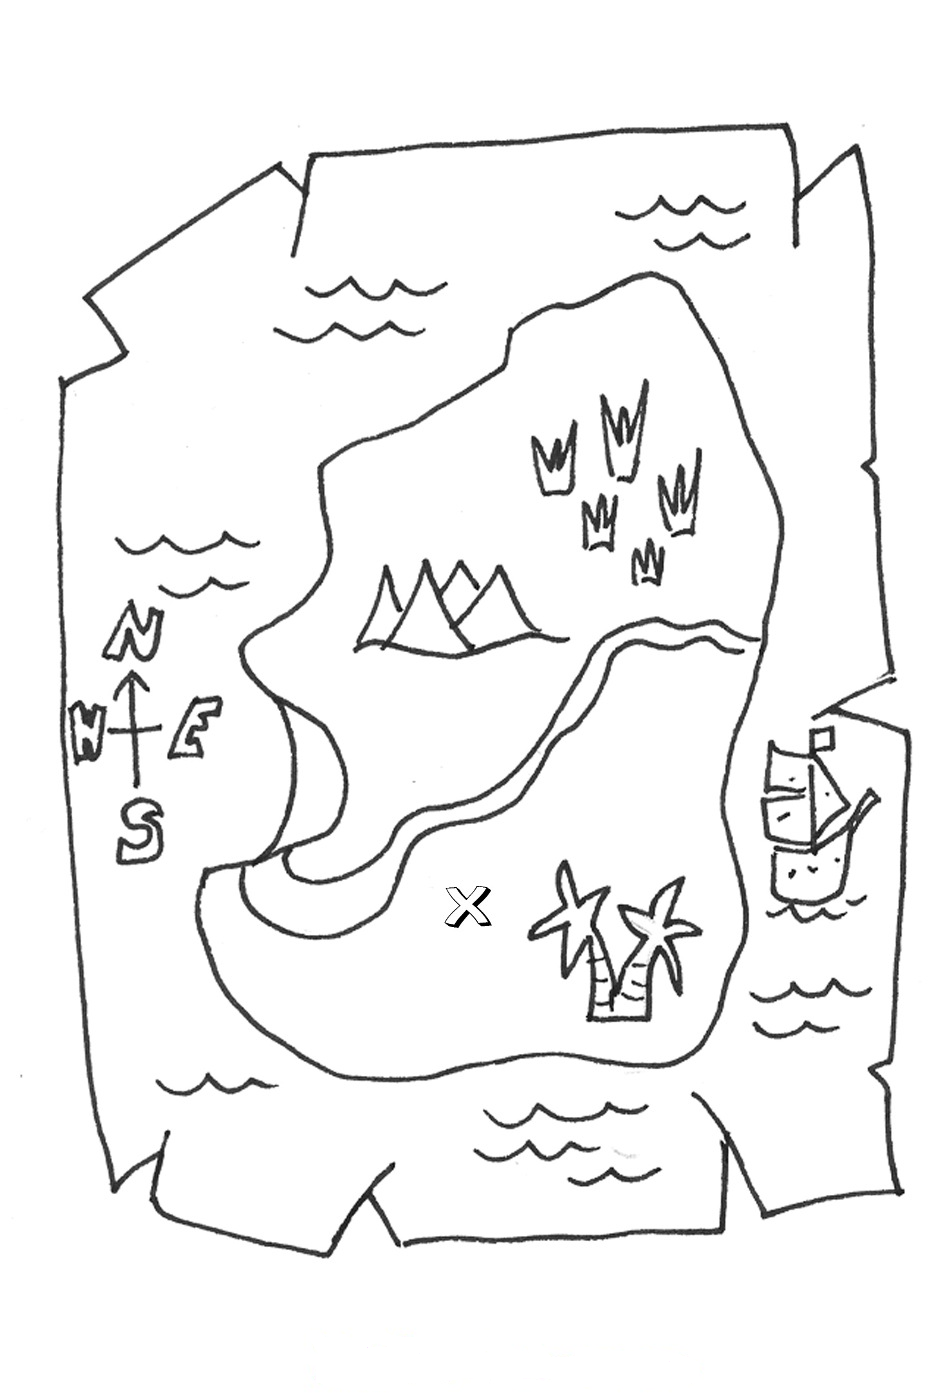 937x1400 My Nephew Loves Coloring Pages Dealing With Pirates, Maps,